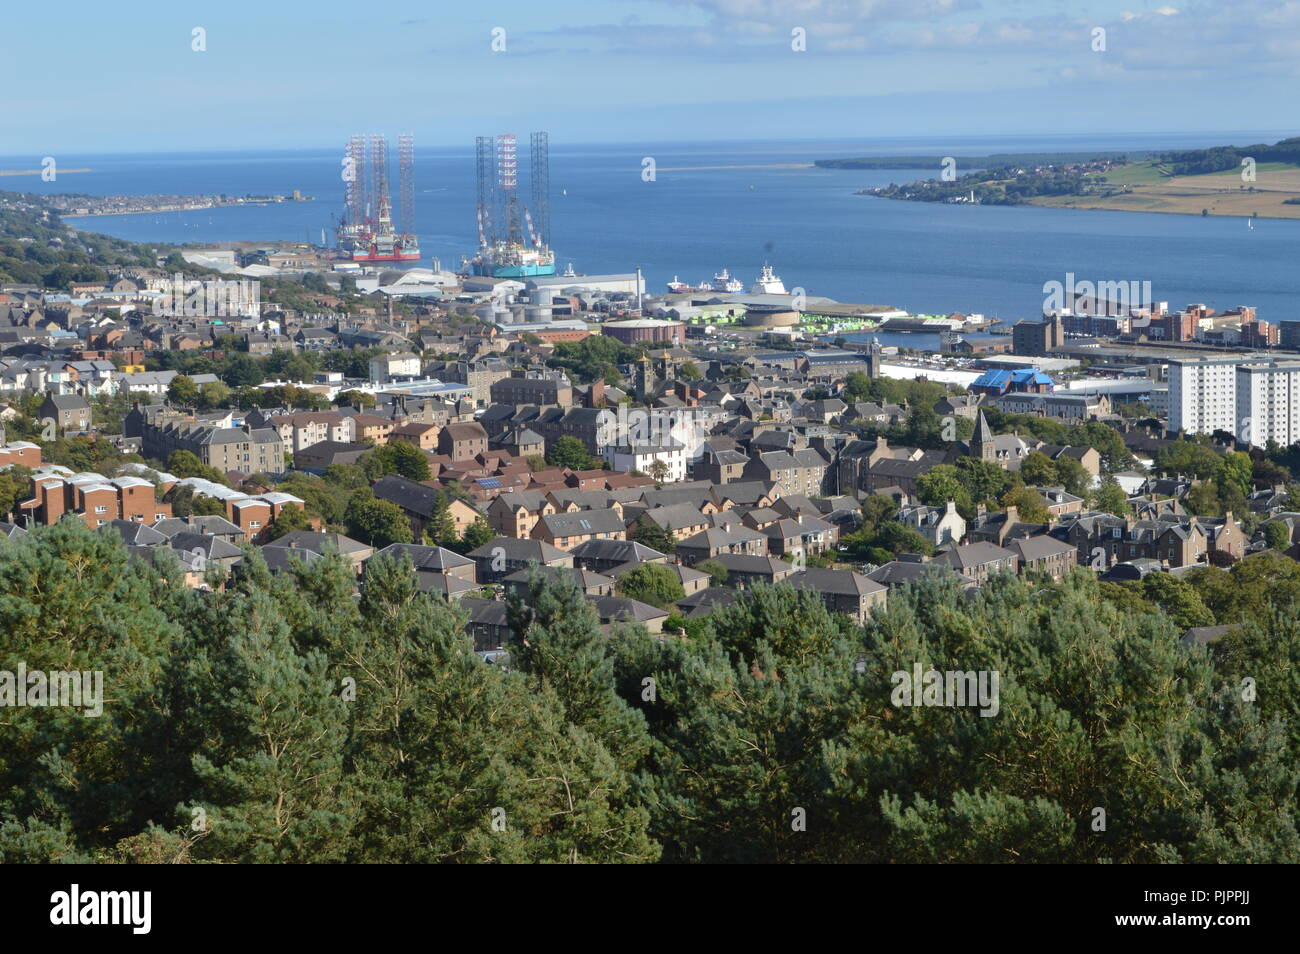 Views over Dundee and the River Tay, Scotland from The Law, September 2018 - Stock Image